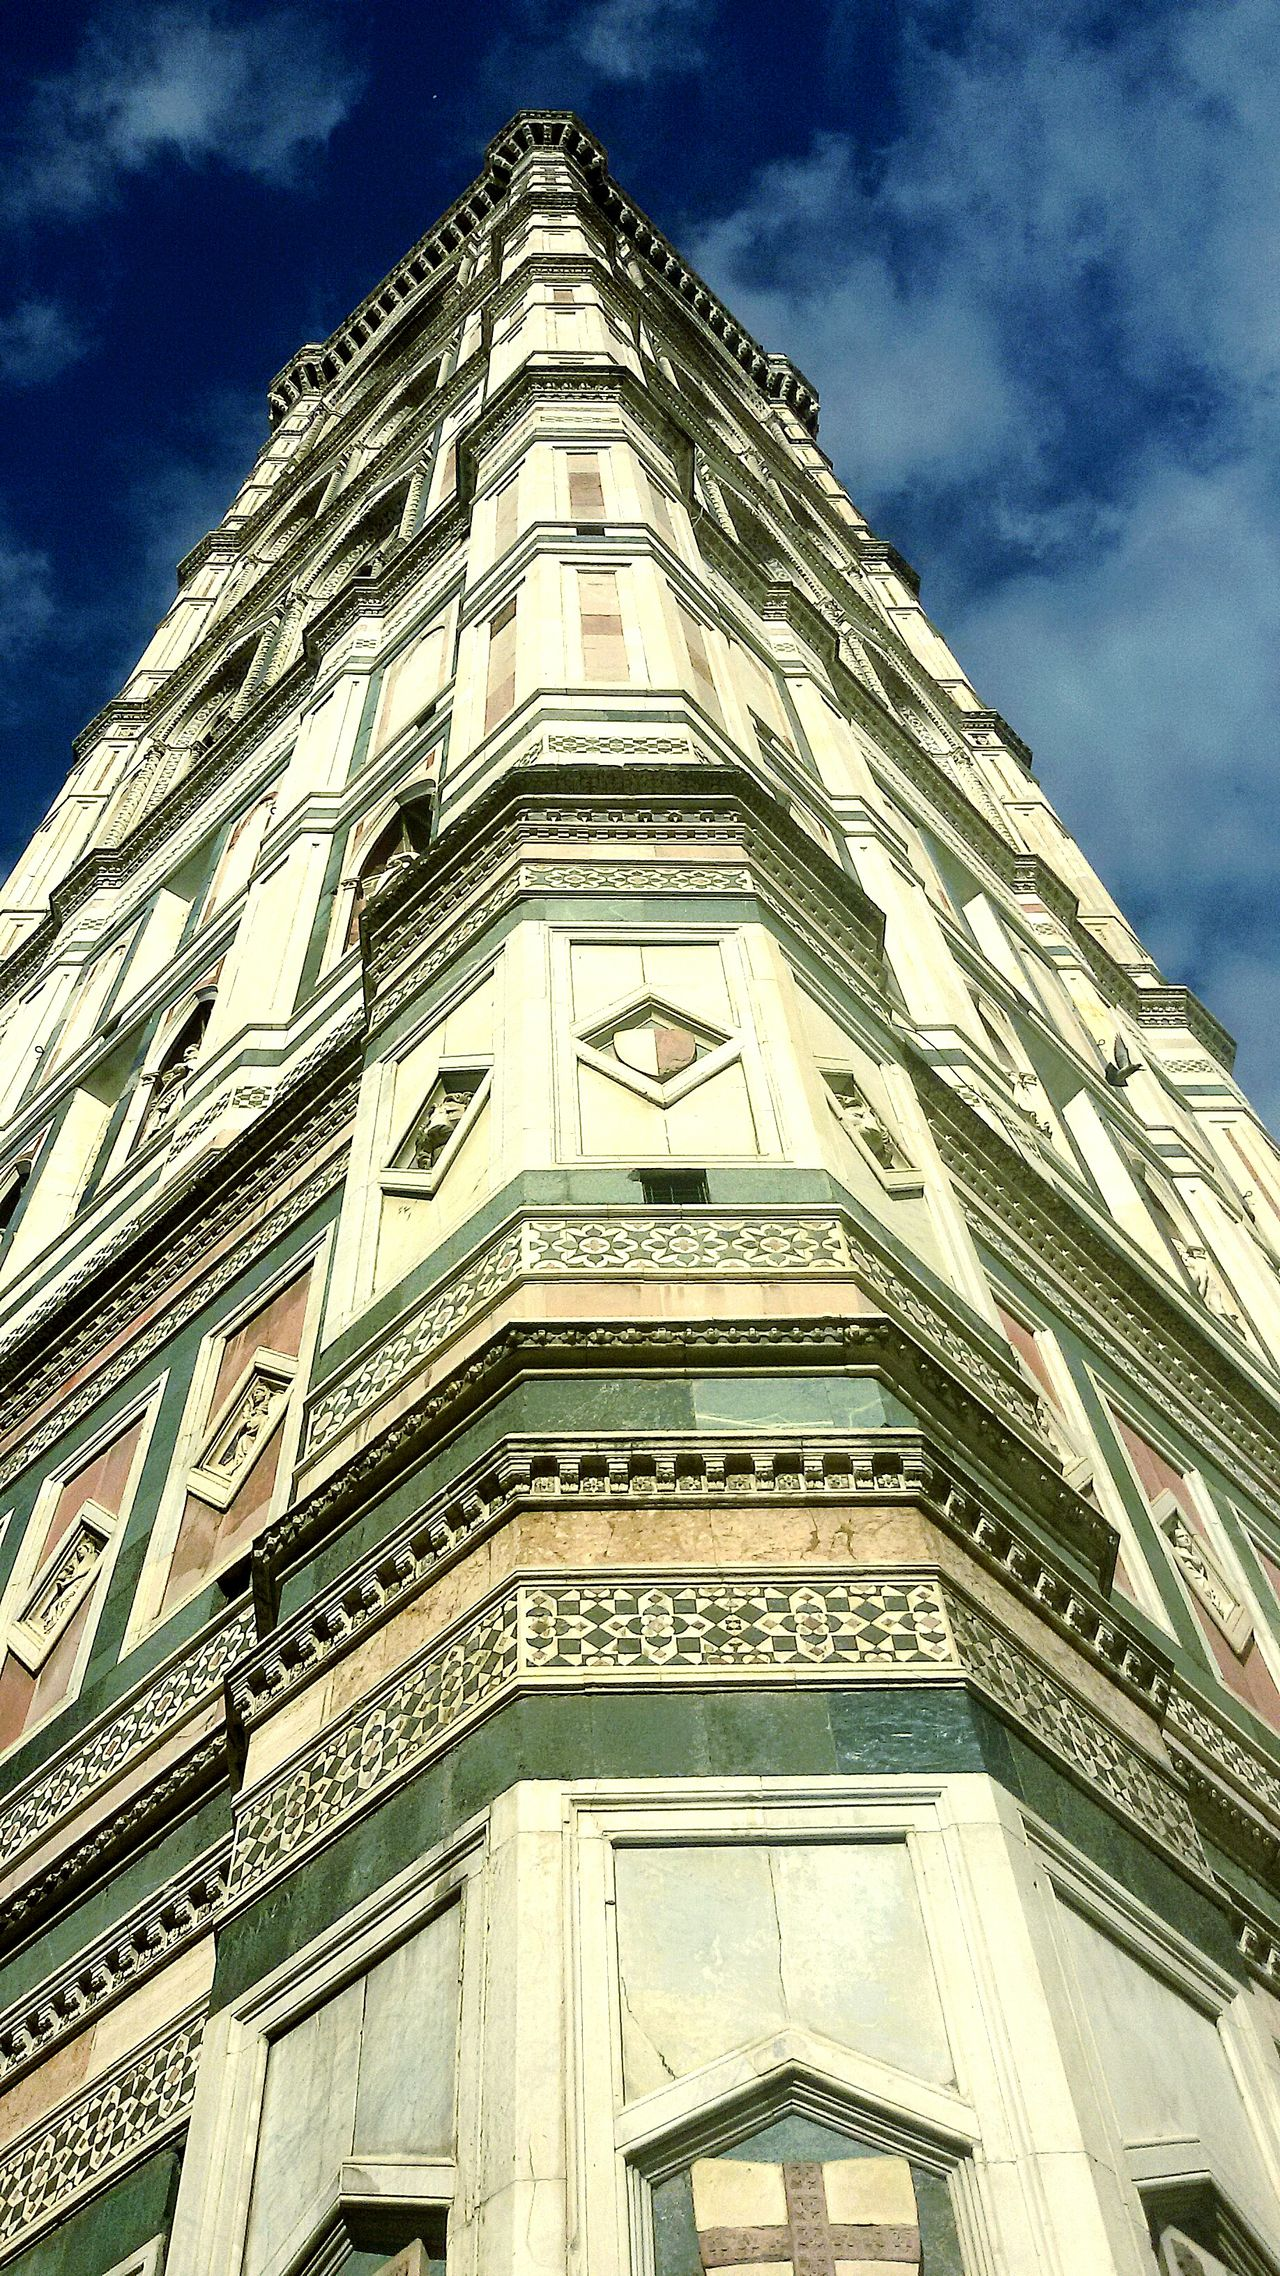 High! we go on top of the sky Architecture Built Structure Sky City Low Angle View Tower History Skyscraper Cloud - Sky Building Exterior Imnewhere Toscana Firenze No People Façade Outdoors Corner Gold Colored Building Feature Giotto Torre Di Giotto Torre Architettura Architetturaitaliana